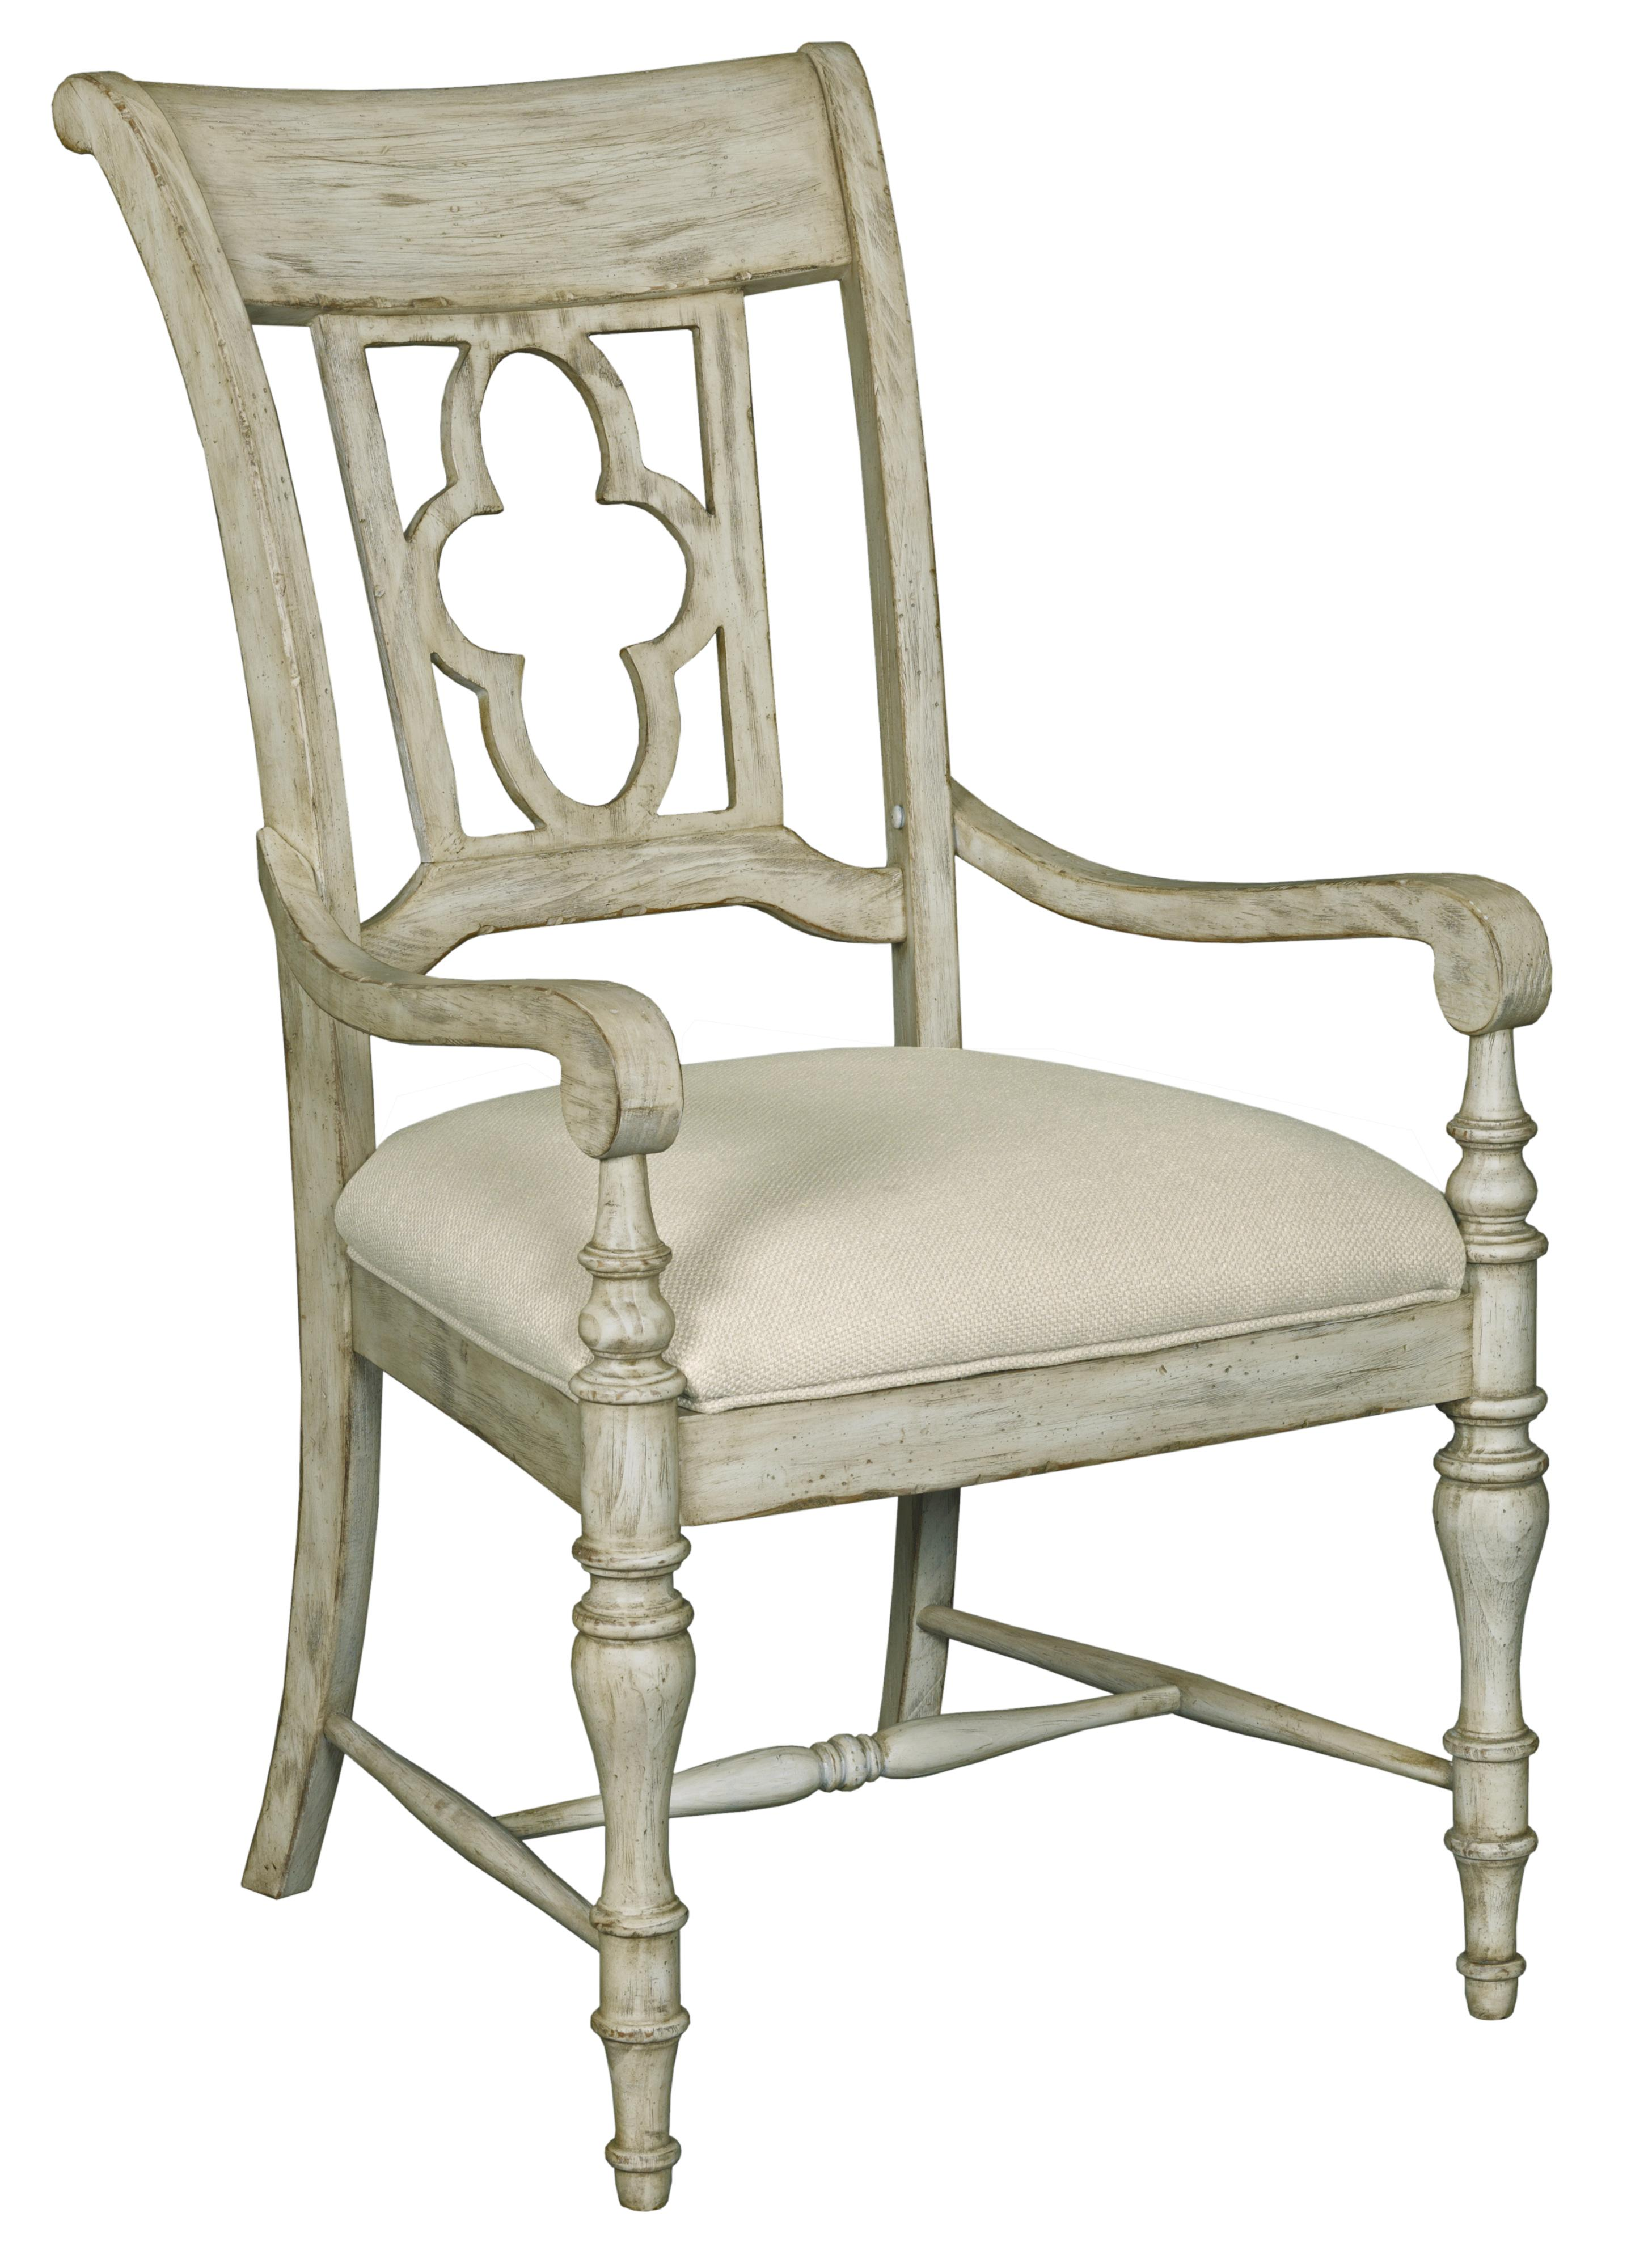 Kincaid Furniture Weatherford Arm Chair - Item Number: 75-062